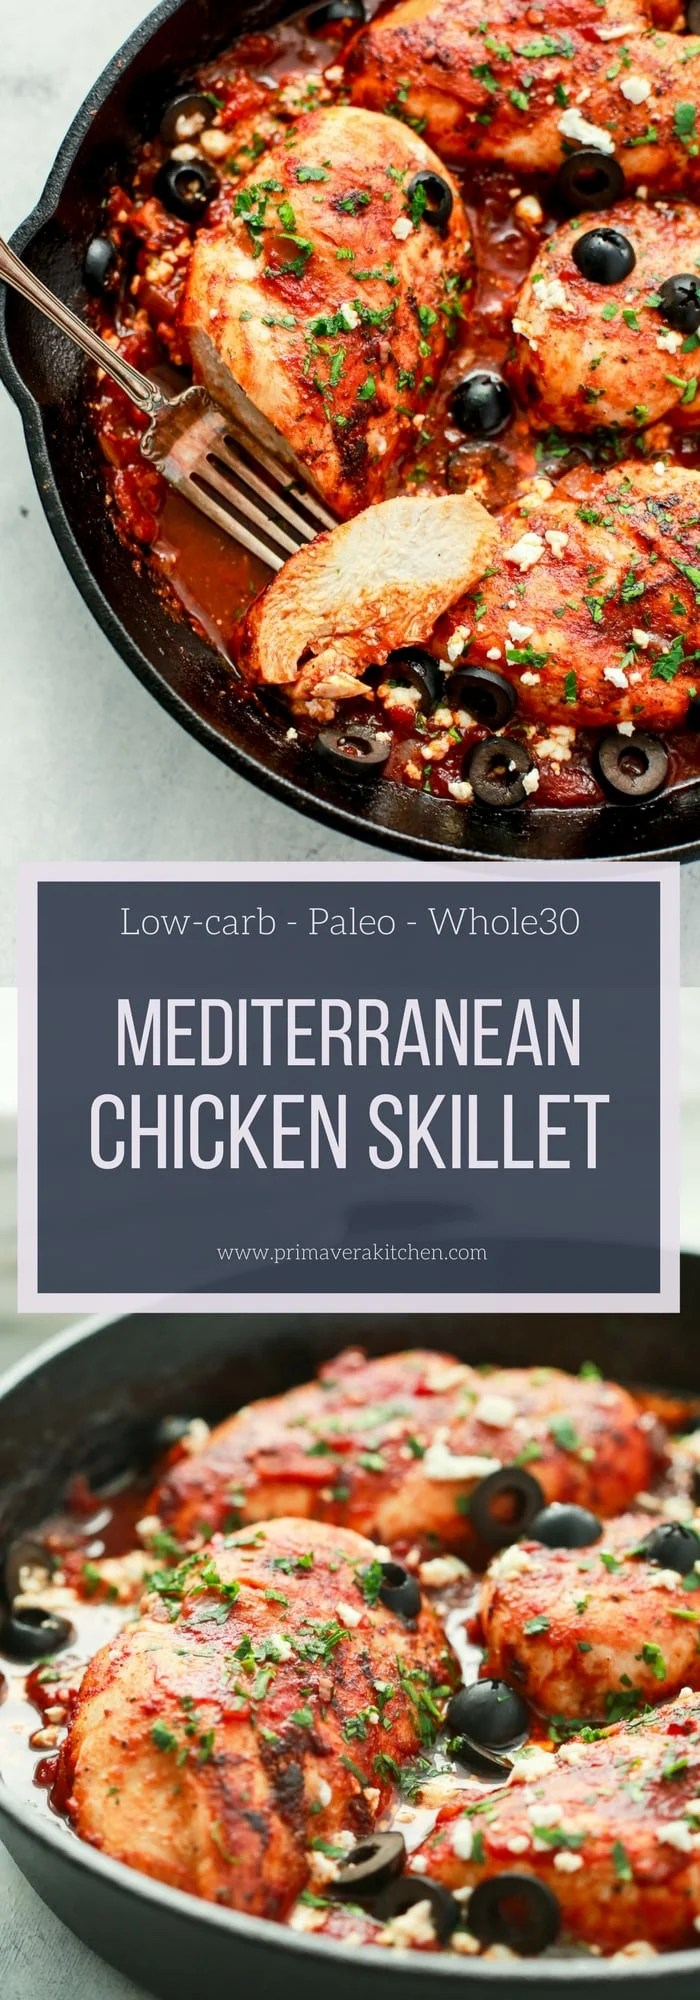 Mediterranean Chicken Skillet Recipe